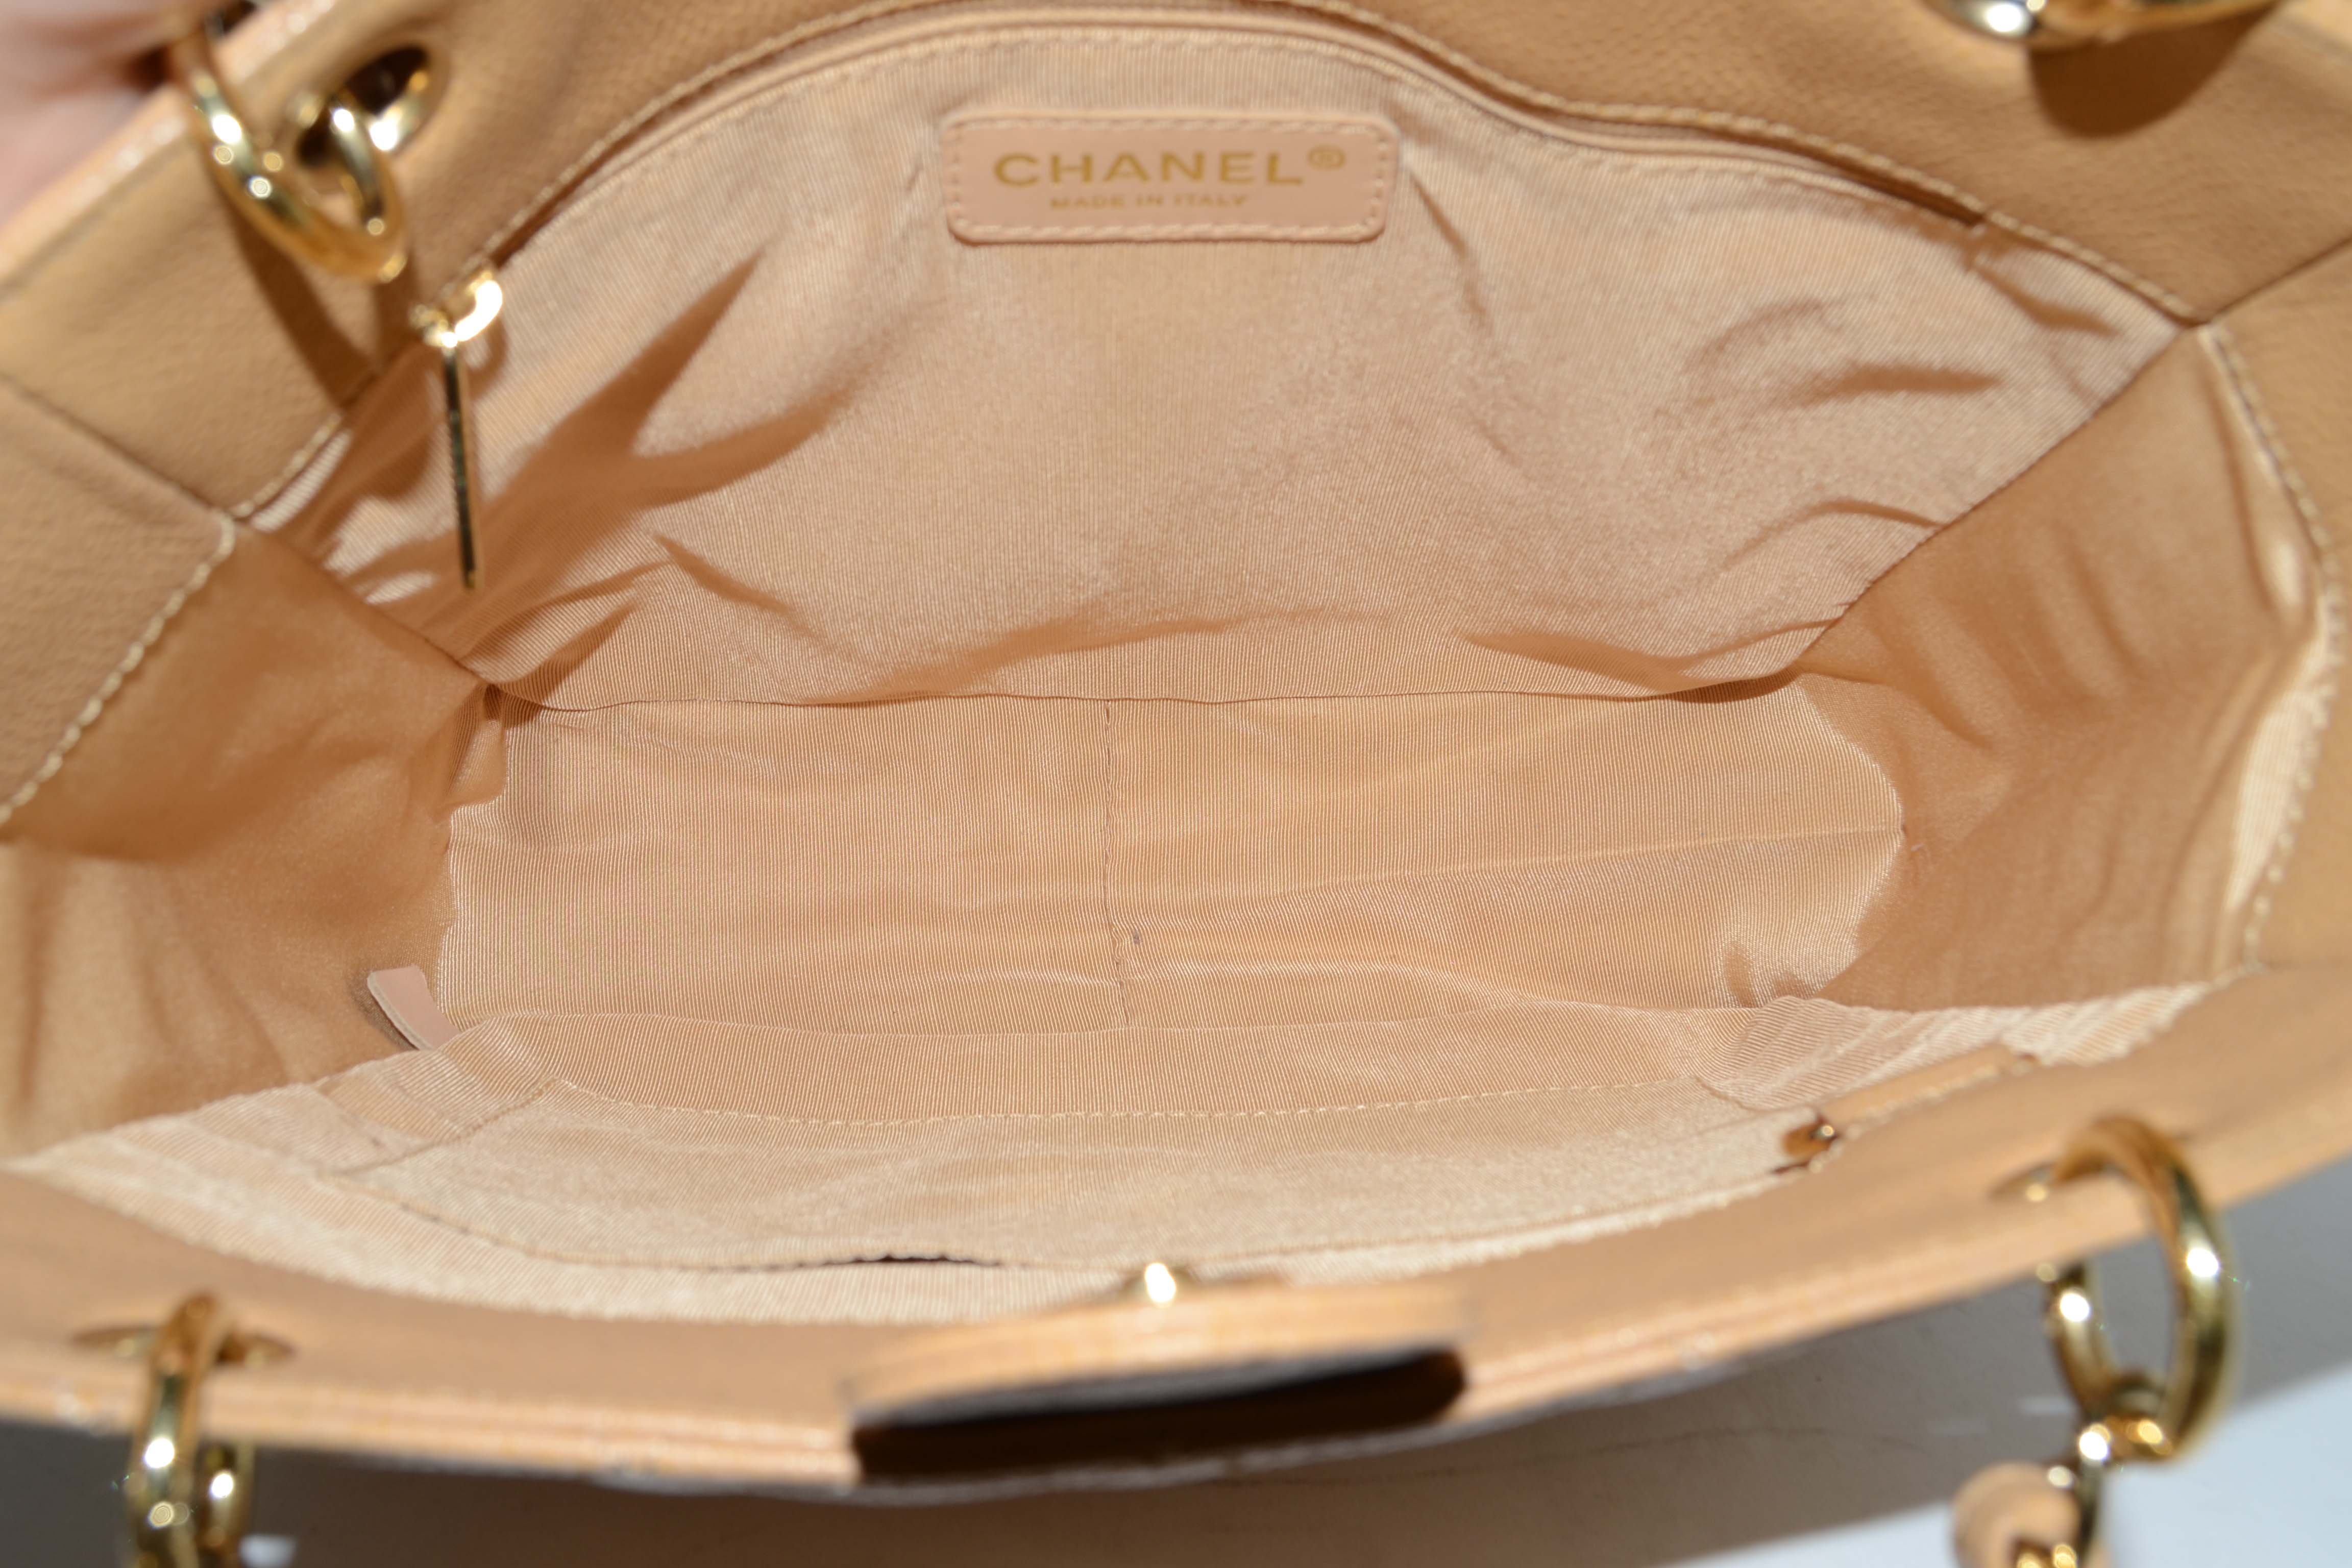 f9ace9fa2a2368 Chanel Nude Quilted Caviar Petite Shopper Tote PST Bag GHW For Sale at  1stdibs